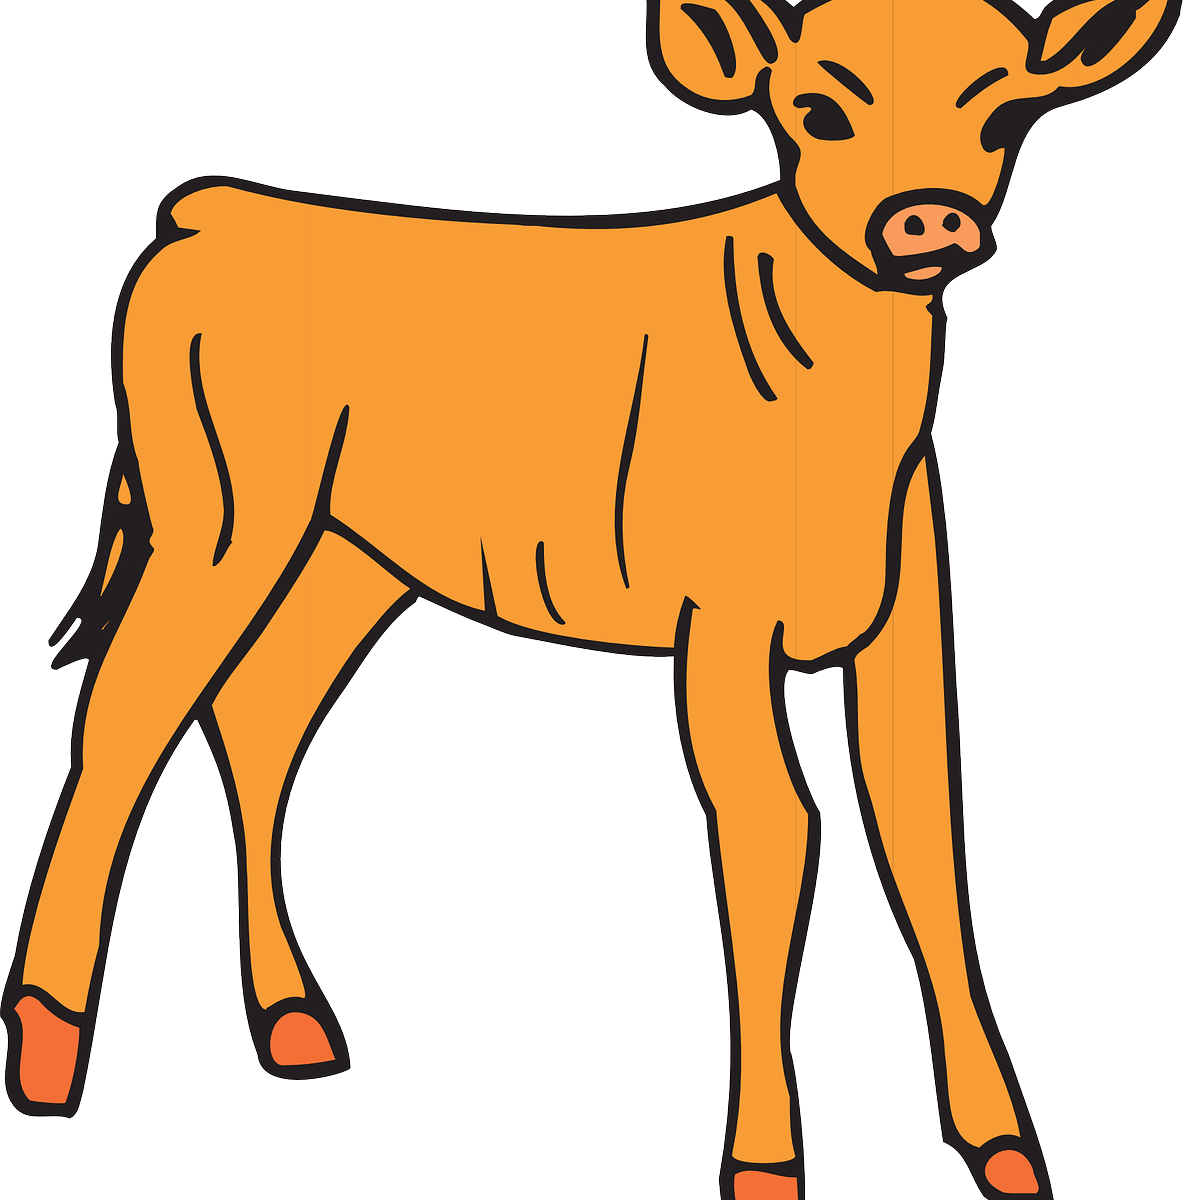 Golden calf clipart clipart images gallery for free download.